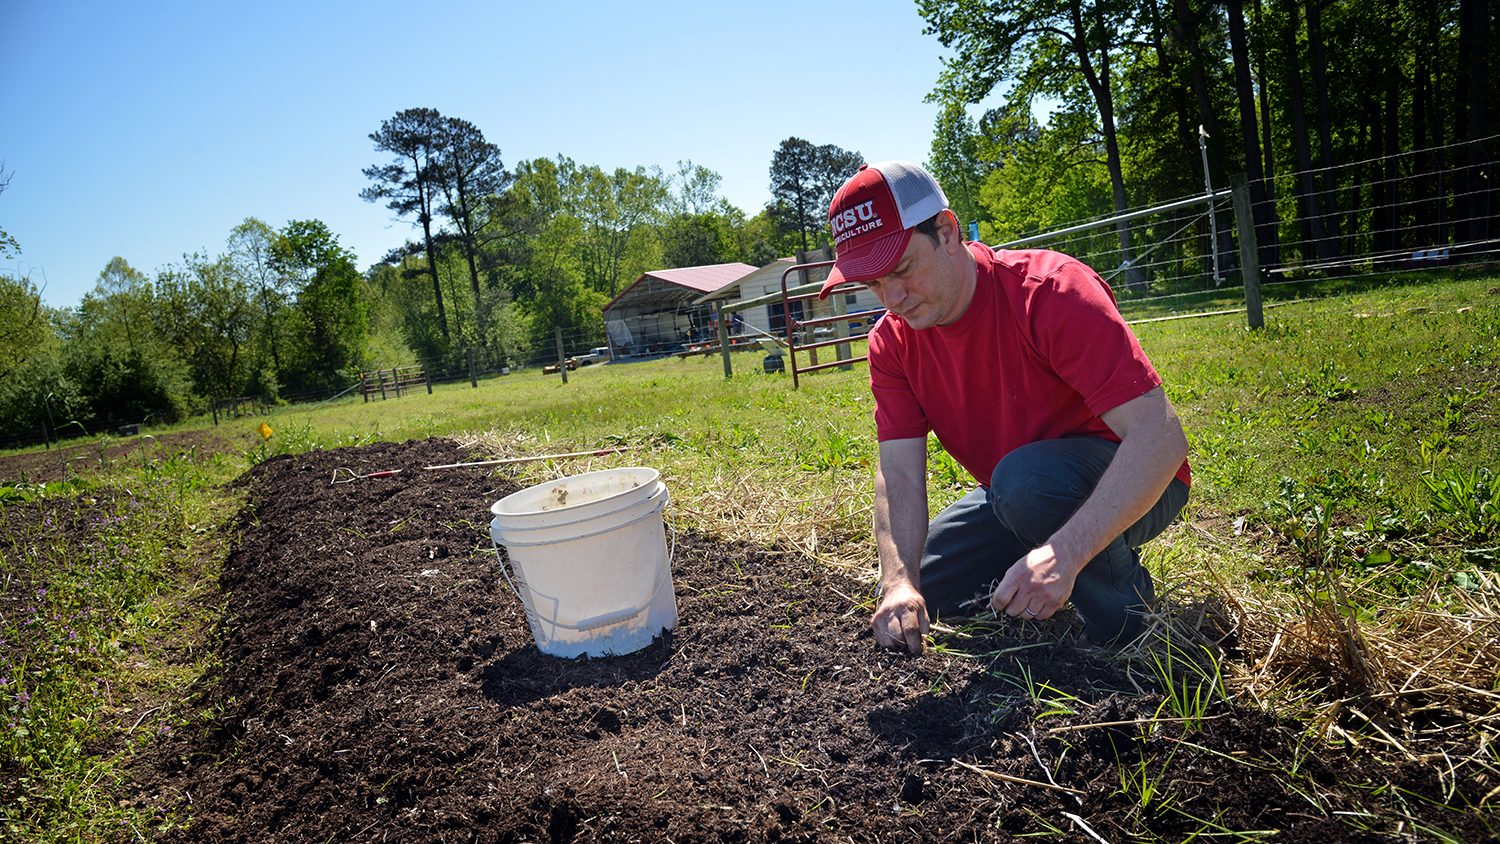 Soil sciences student weeds his section of garden at the Agroecology Farm.